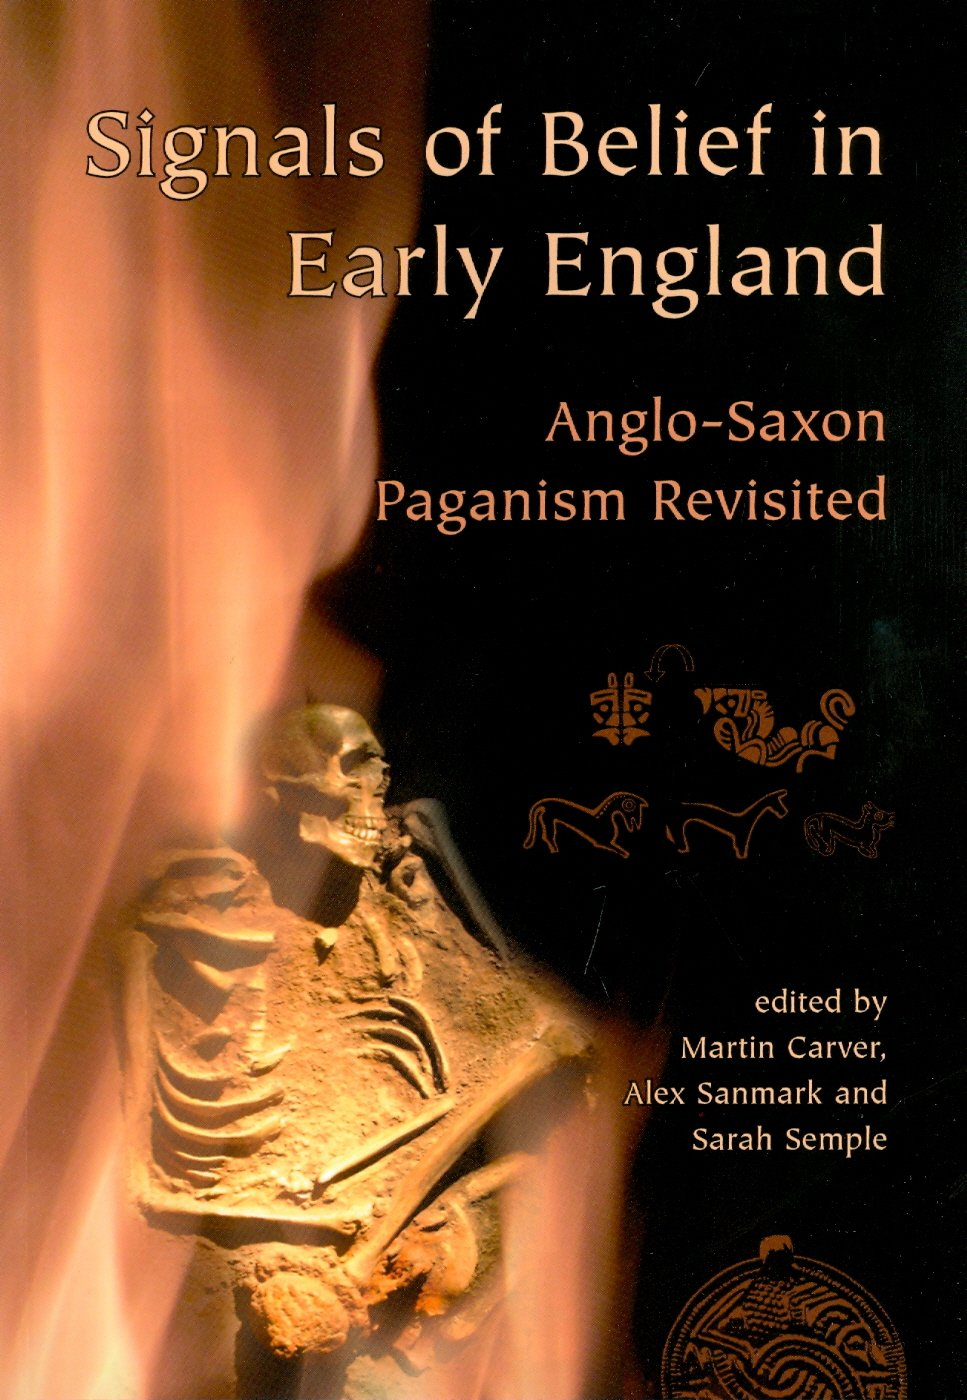 Signals of Belief in Early England: Anglo-Saxon Paganism Revisited